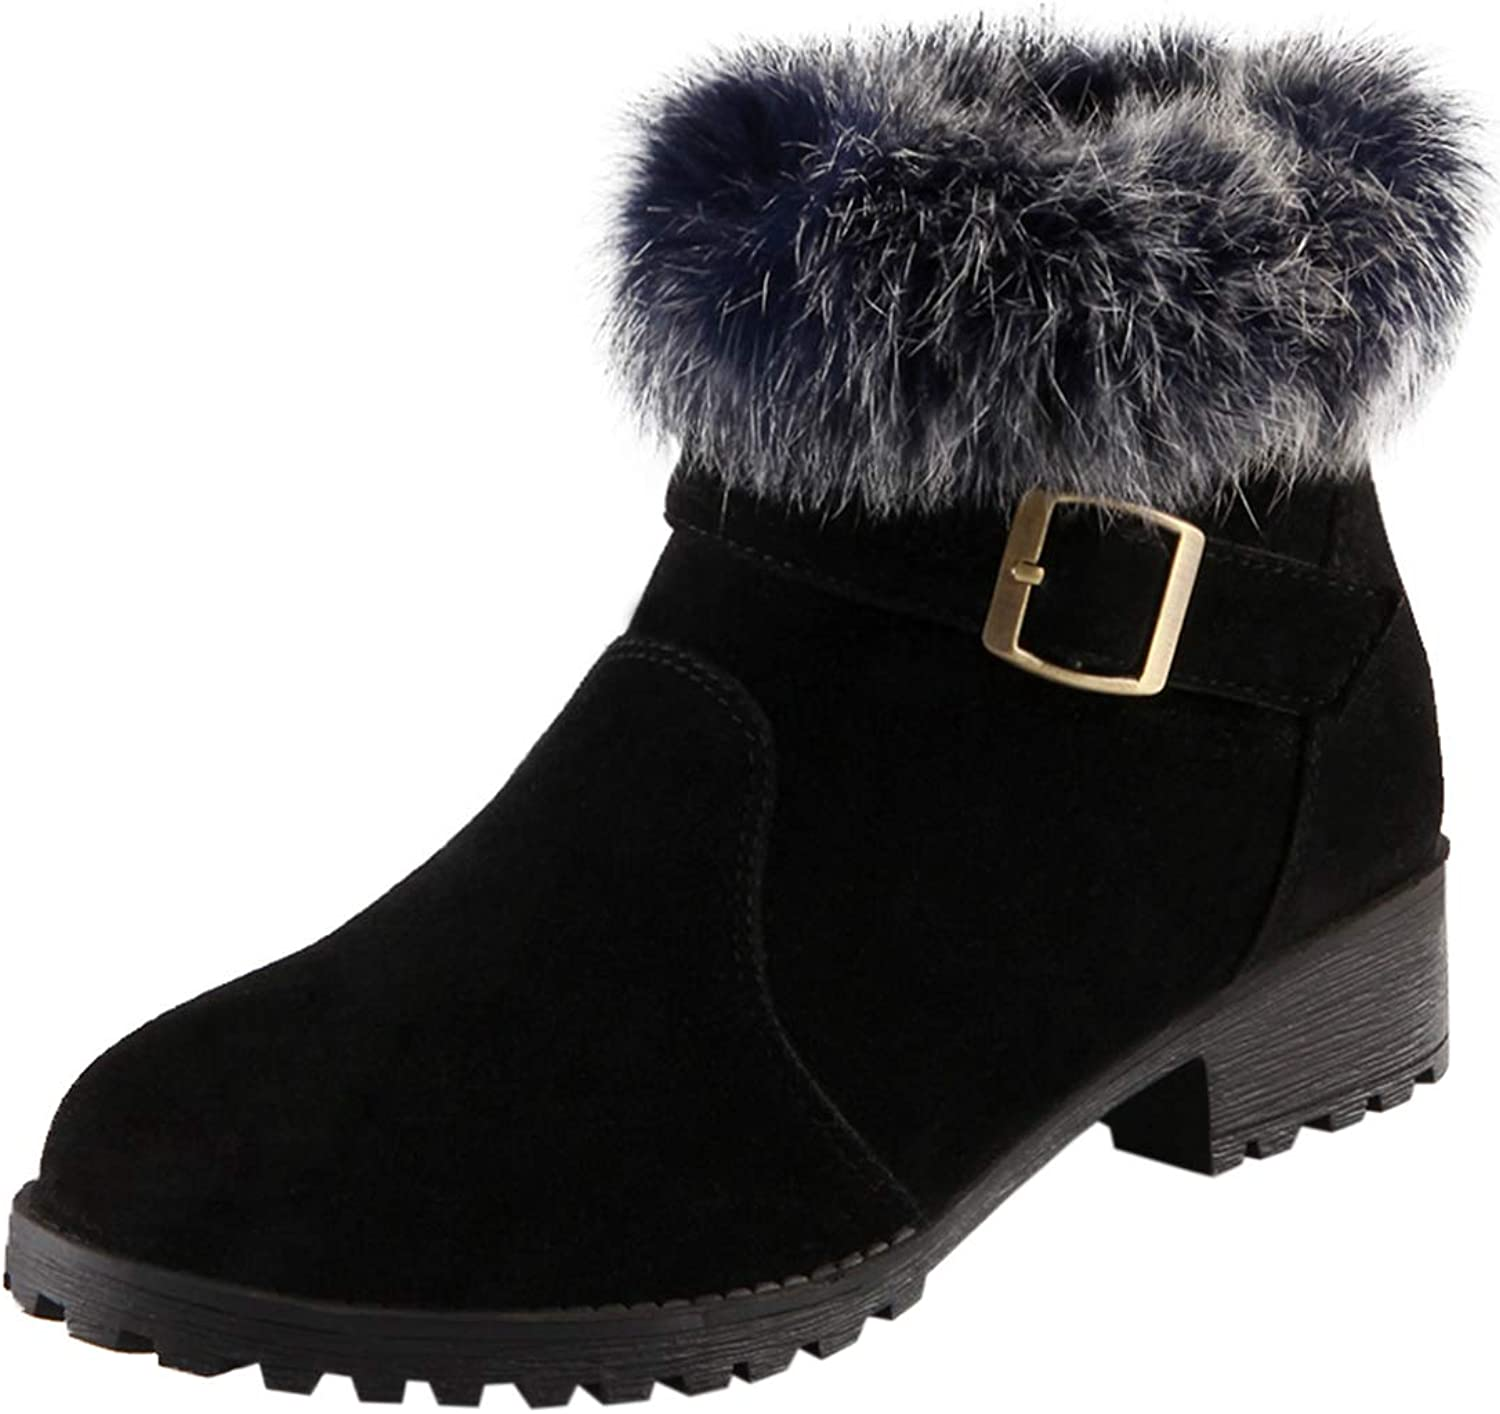 Vitalo Womens Low Block Heel Ankle Boots Ladies Collar Fur Lined Winter Warm Boots